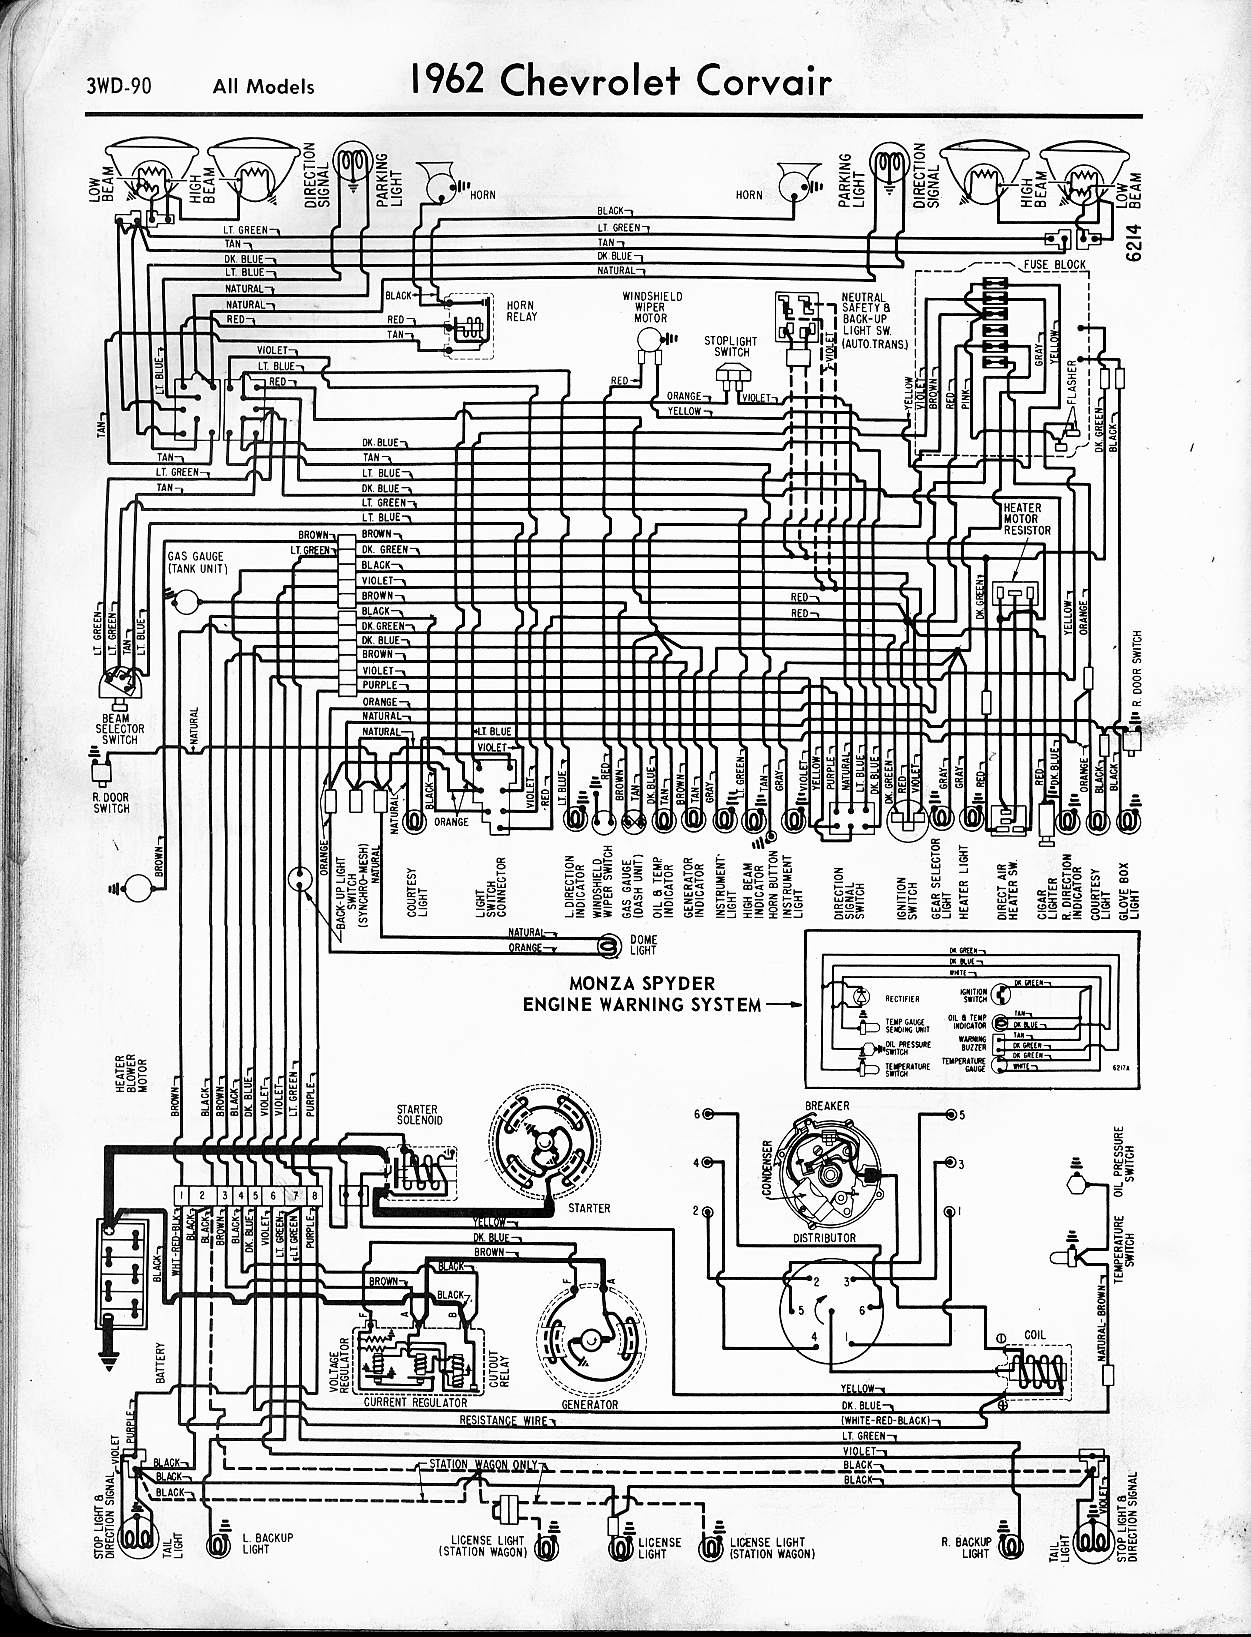 1965 corvair wiring harness wiring diagram libraries 1965 corvair wiring diagram wiring diagram third level68 corvair wiring diagram wiring diagrams corvair turbocharger diagram